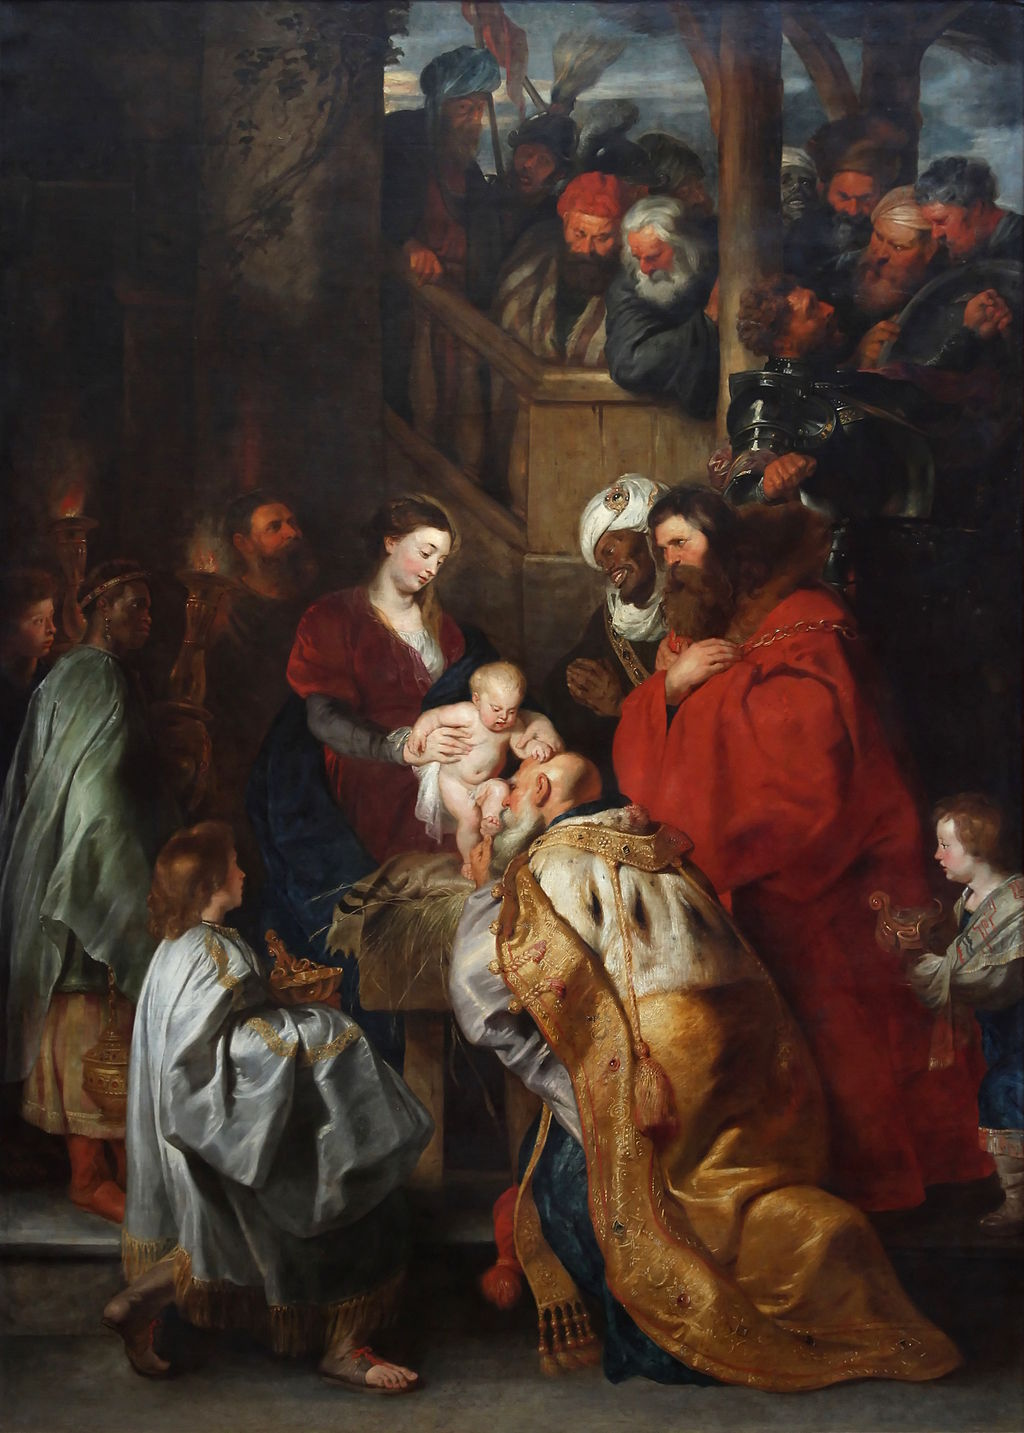 Peter Paul Rubens, The Adoration of the Magi, 1619